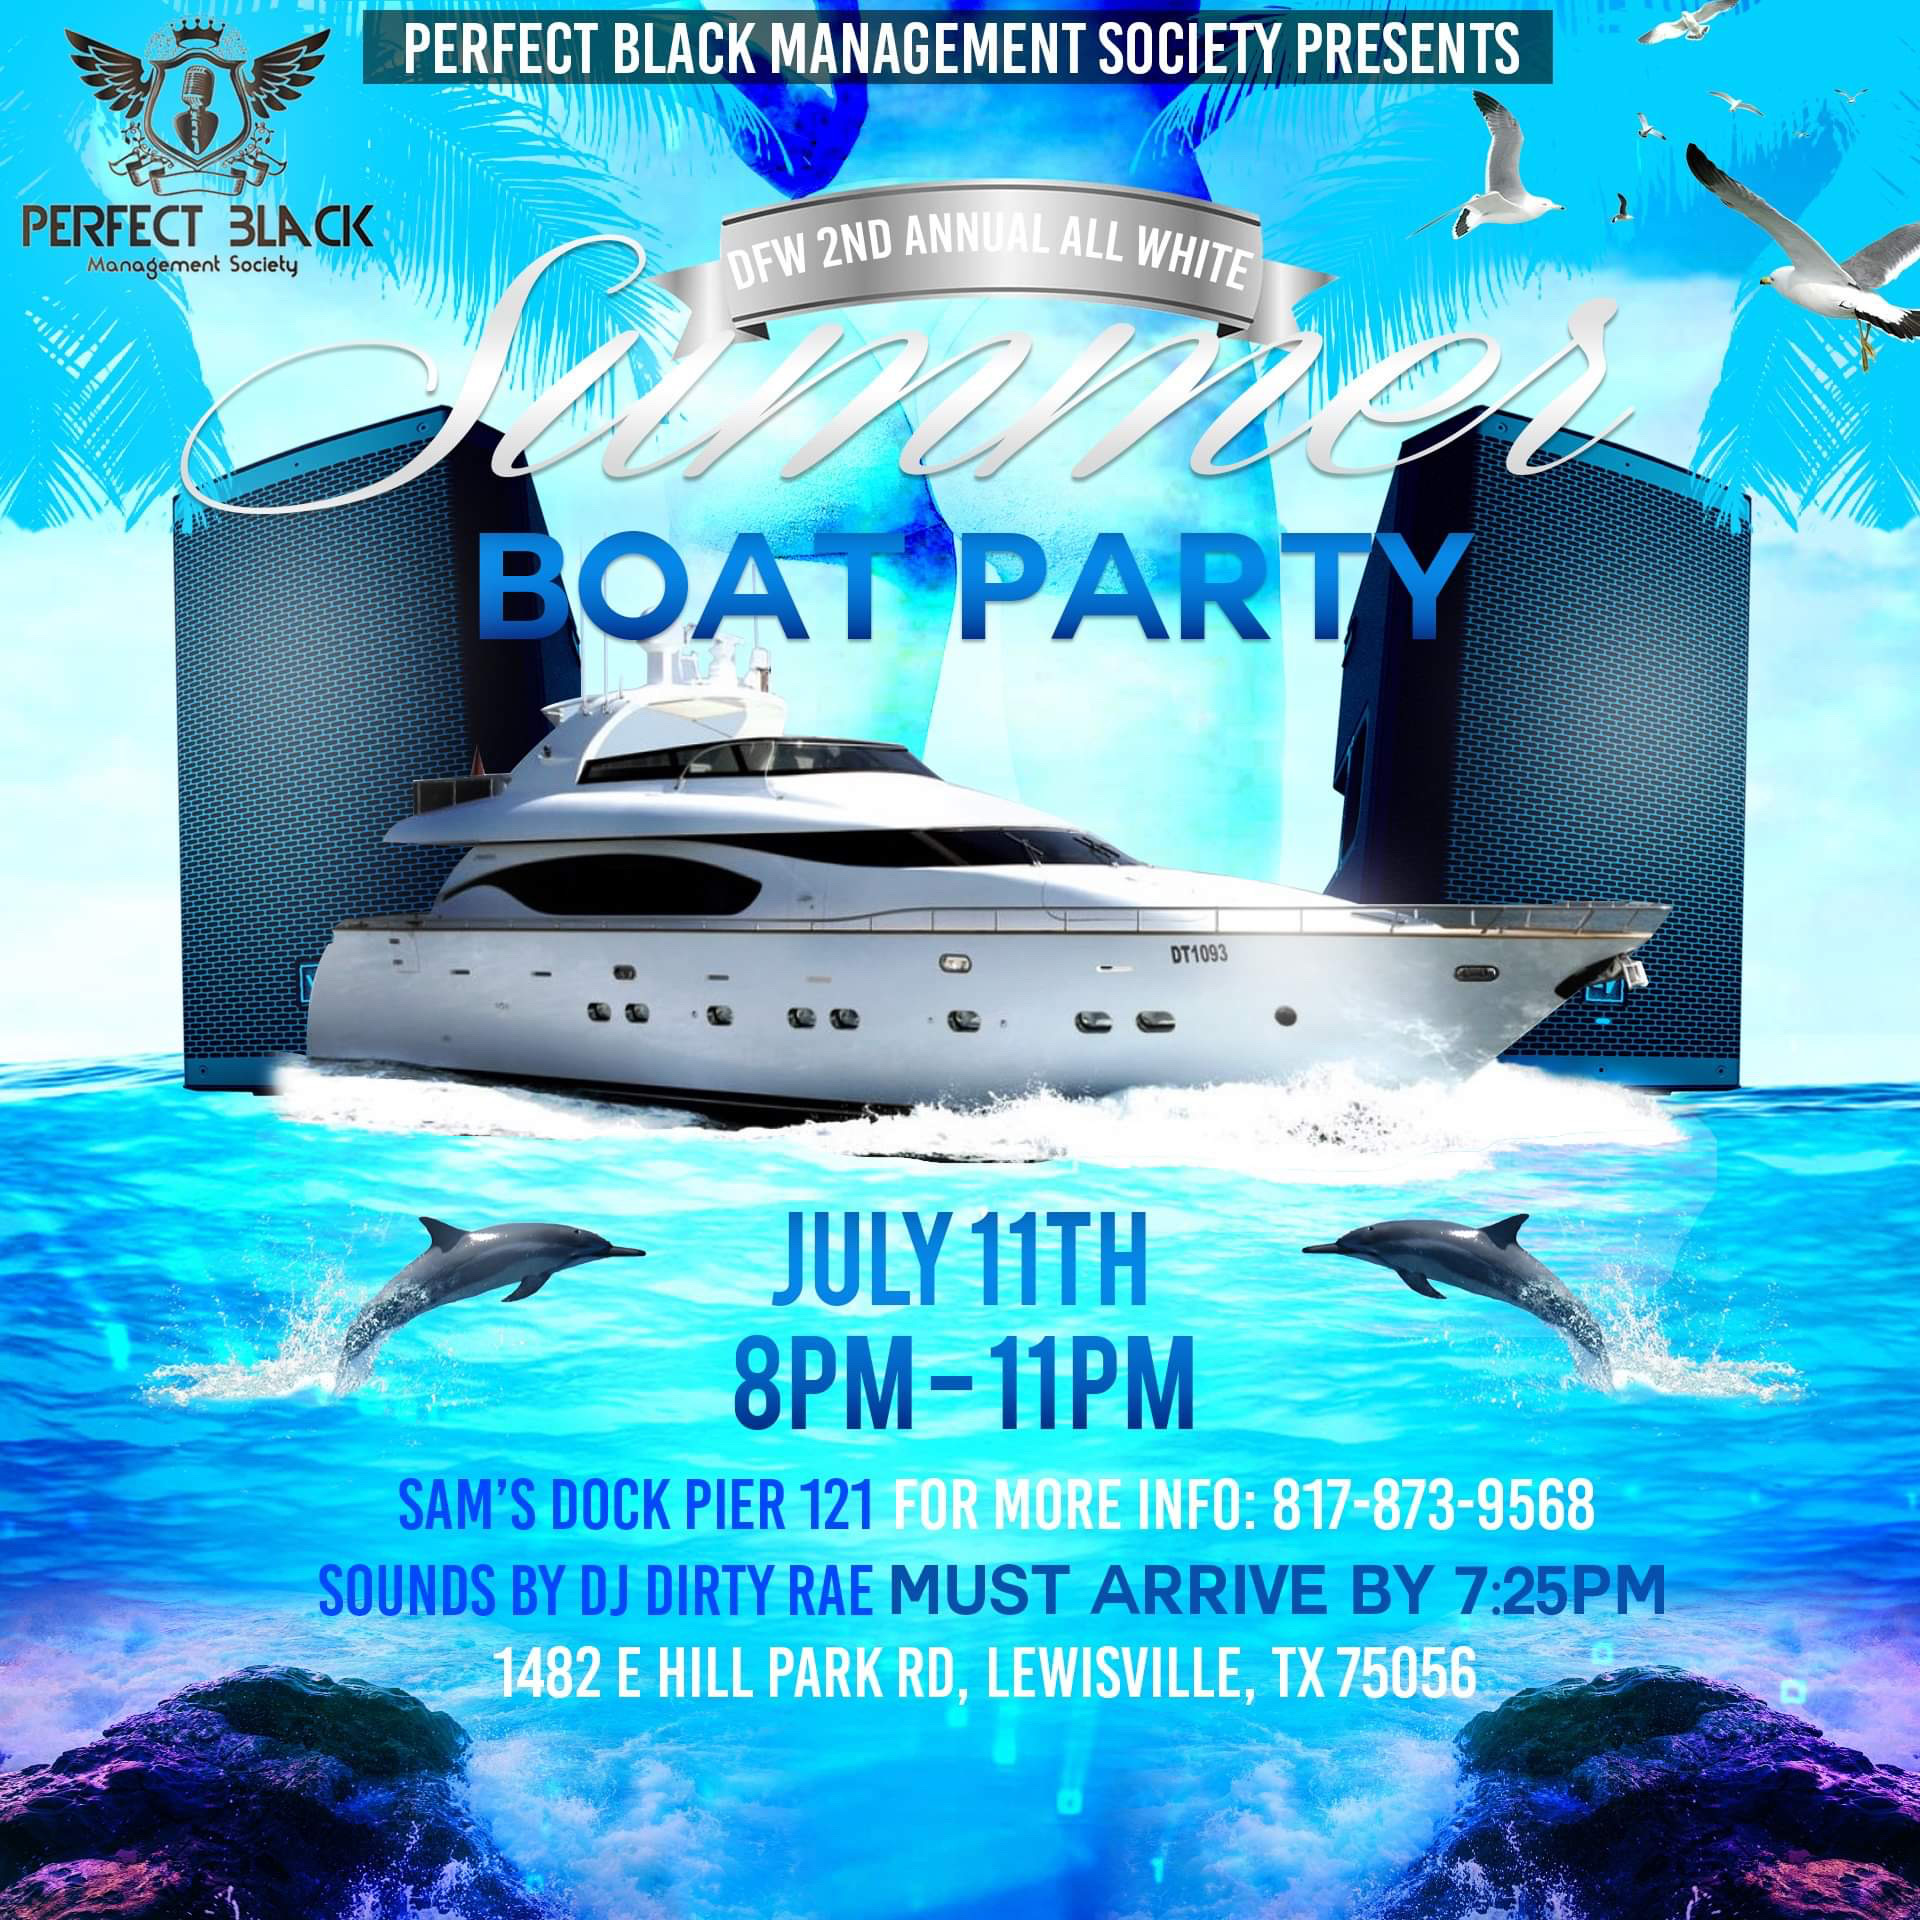 DFW's 2nd Annual ALL WHITE Summer Boat Party